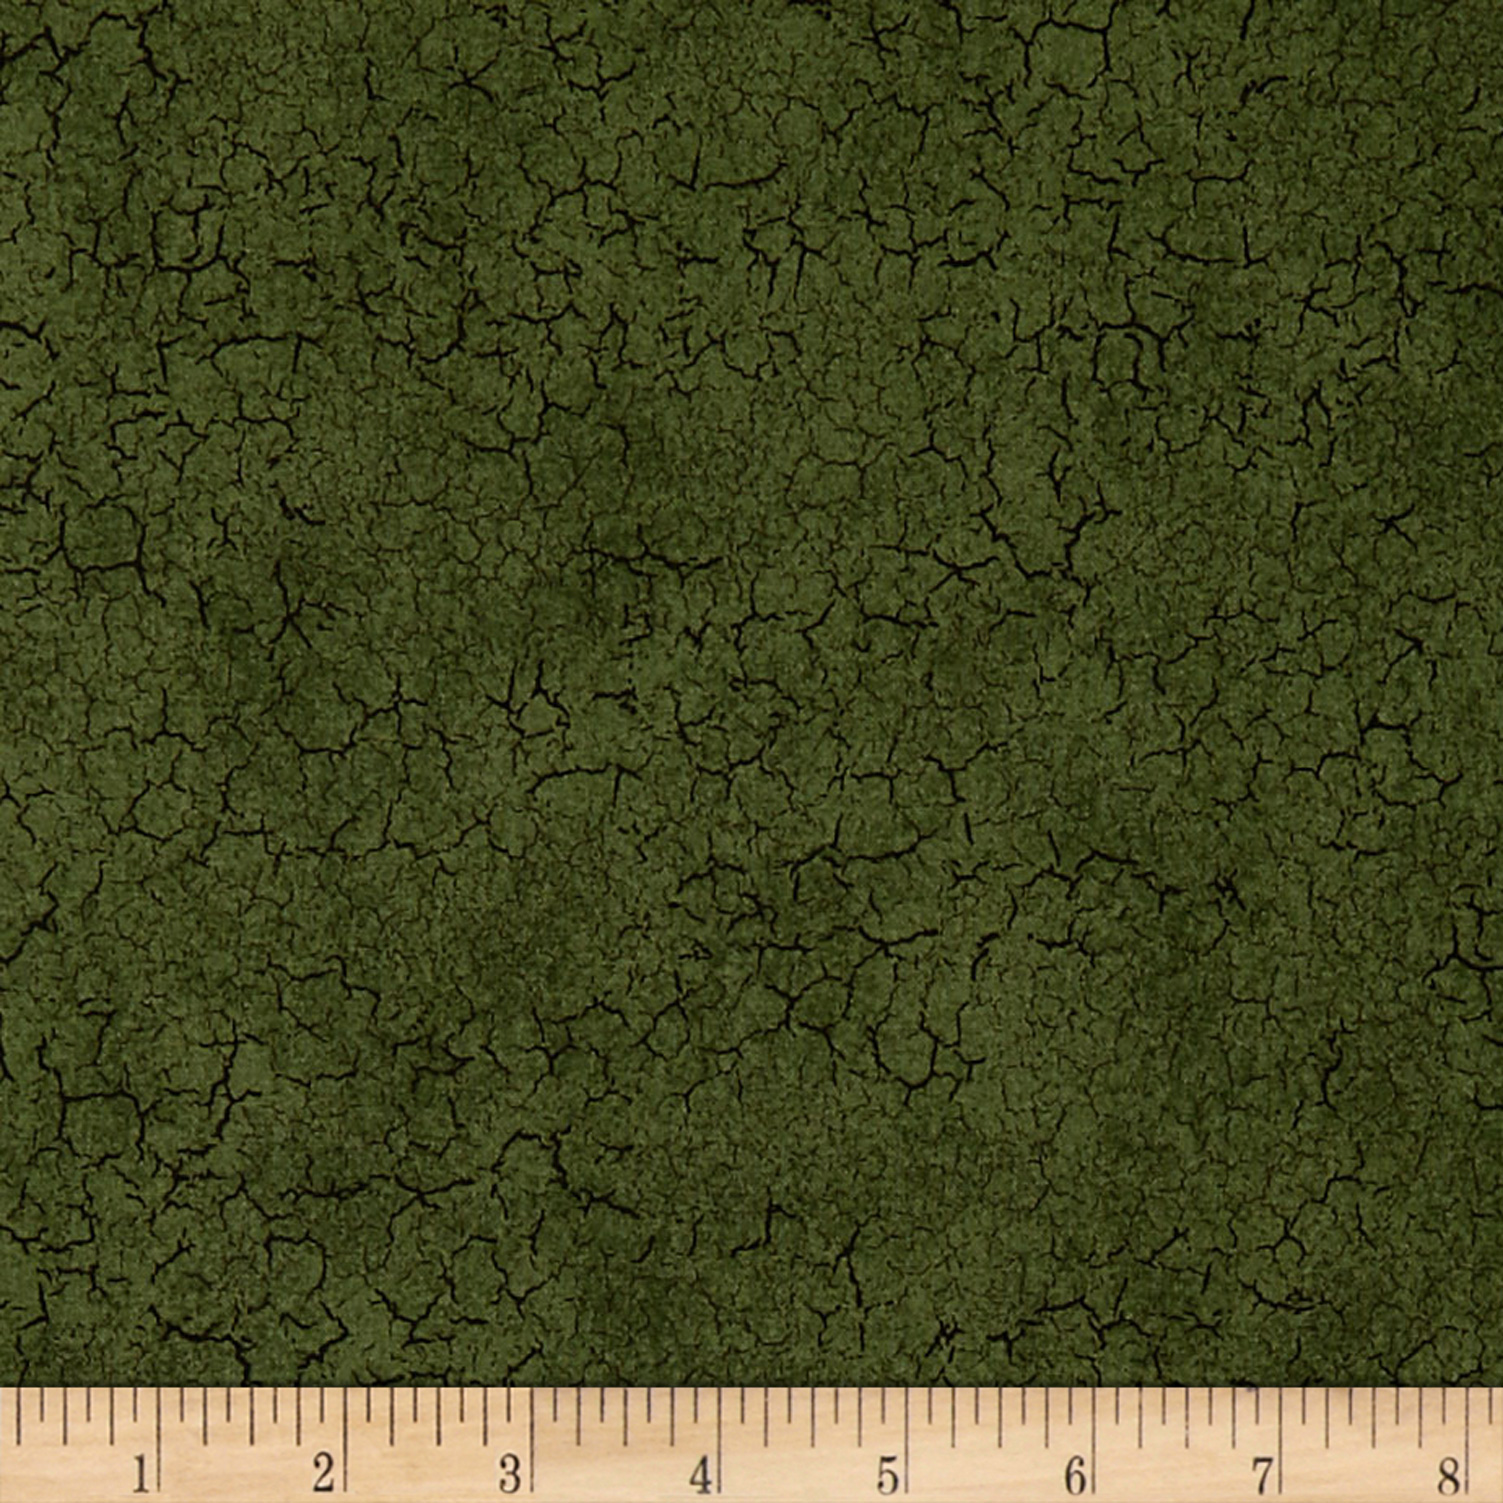 Farmers Market Concrete Dark Green Fabric